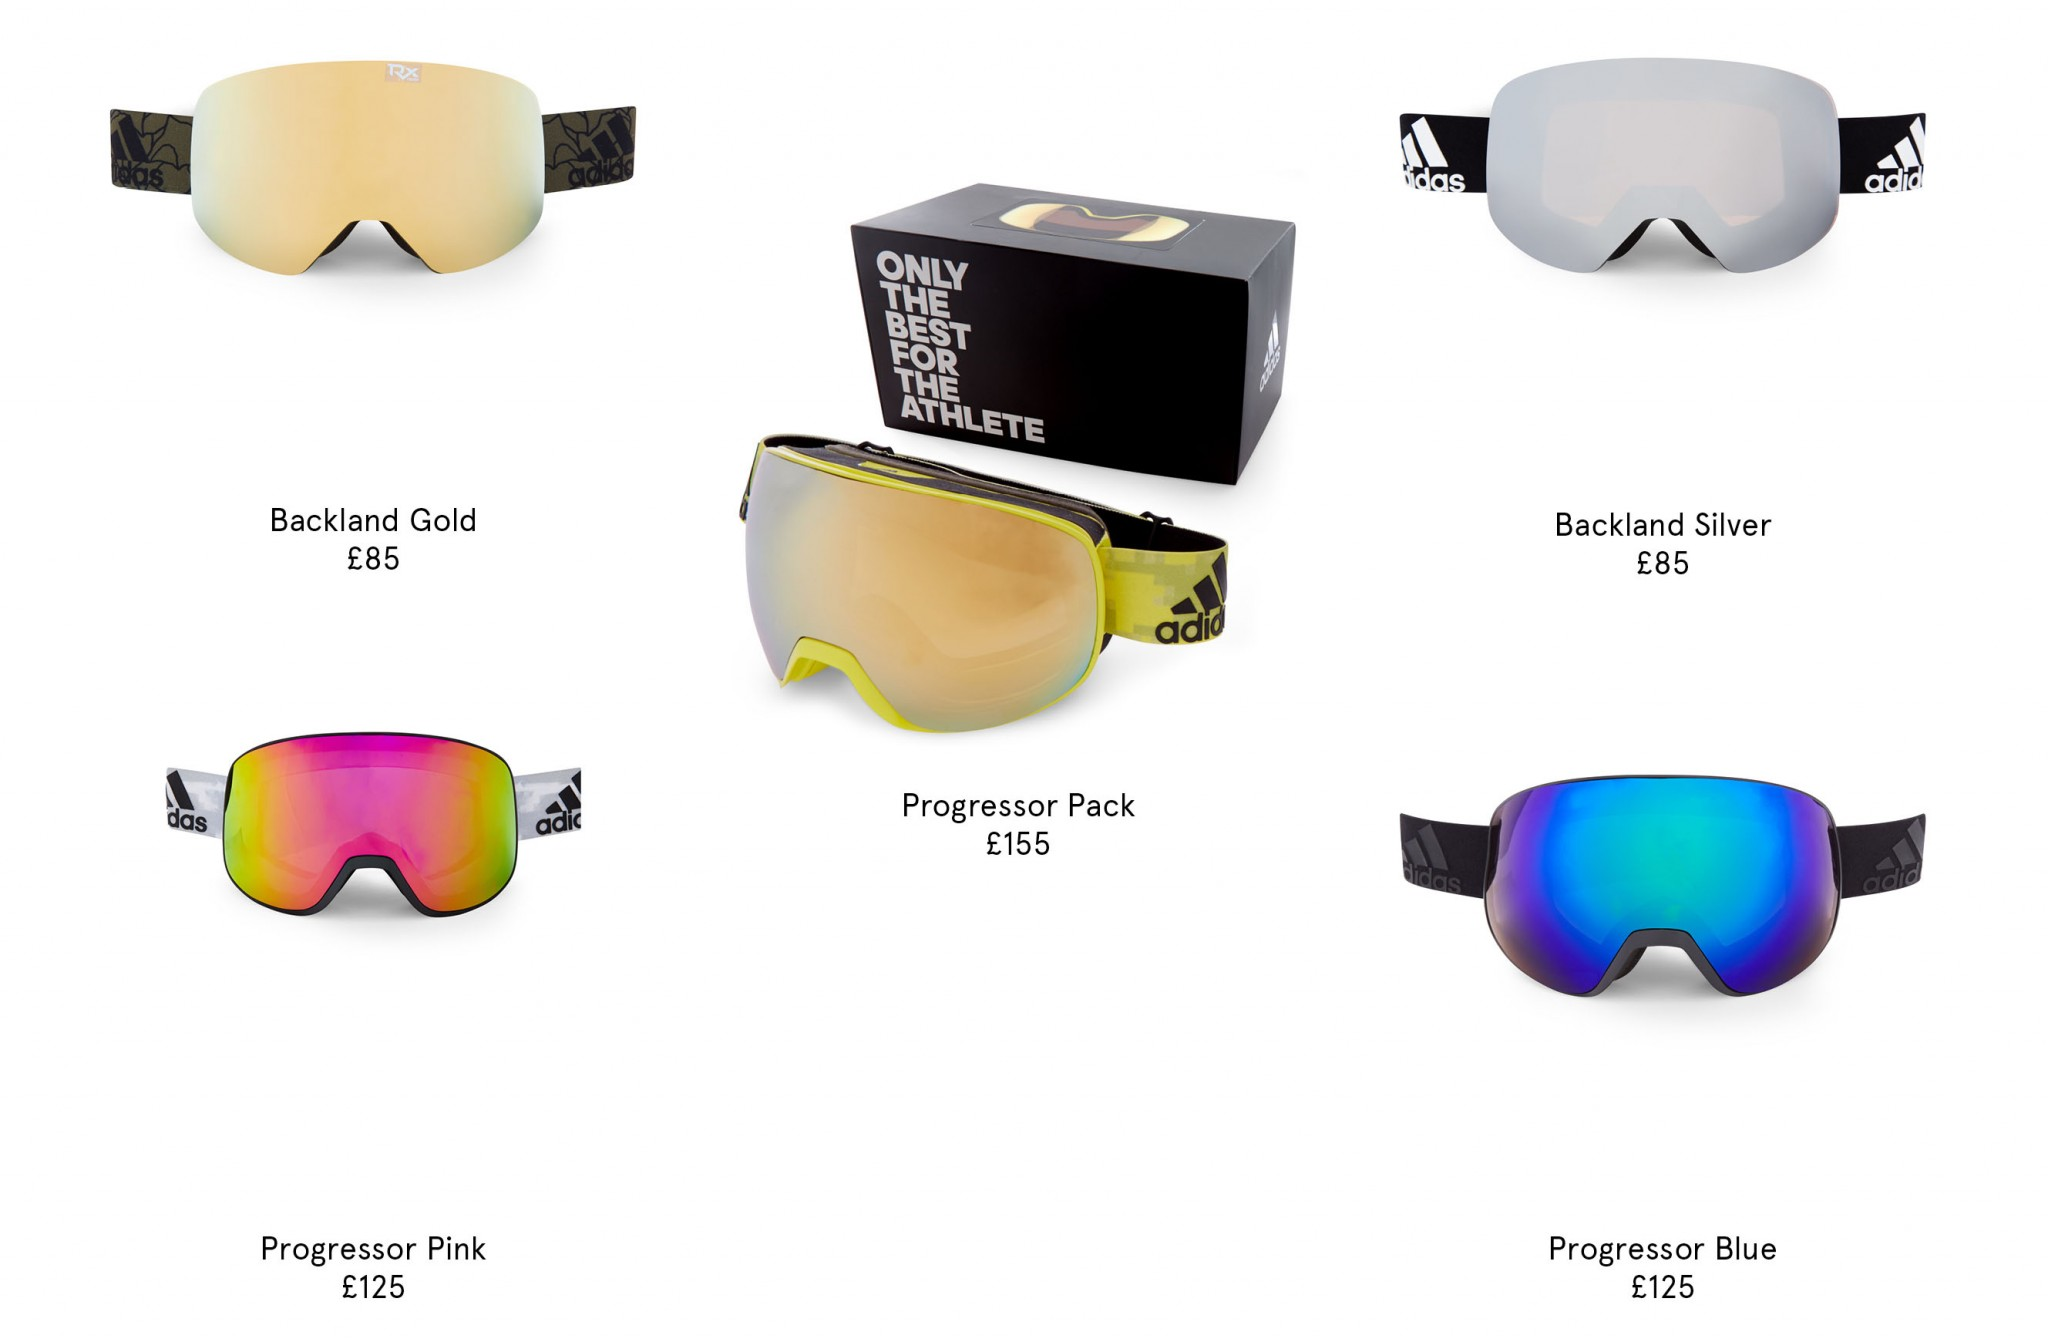 5ec4e9c48 ... with a cylindrical double-lens for crystal clear vision and a snug fit  in all weathers. The Progressor C and S can be purchased as stand-alone  goggles.